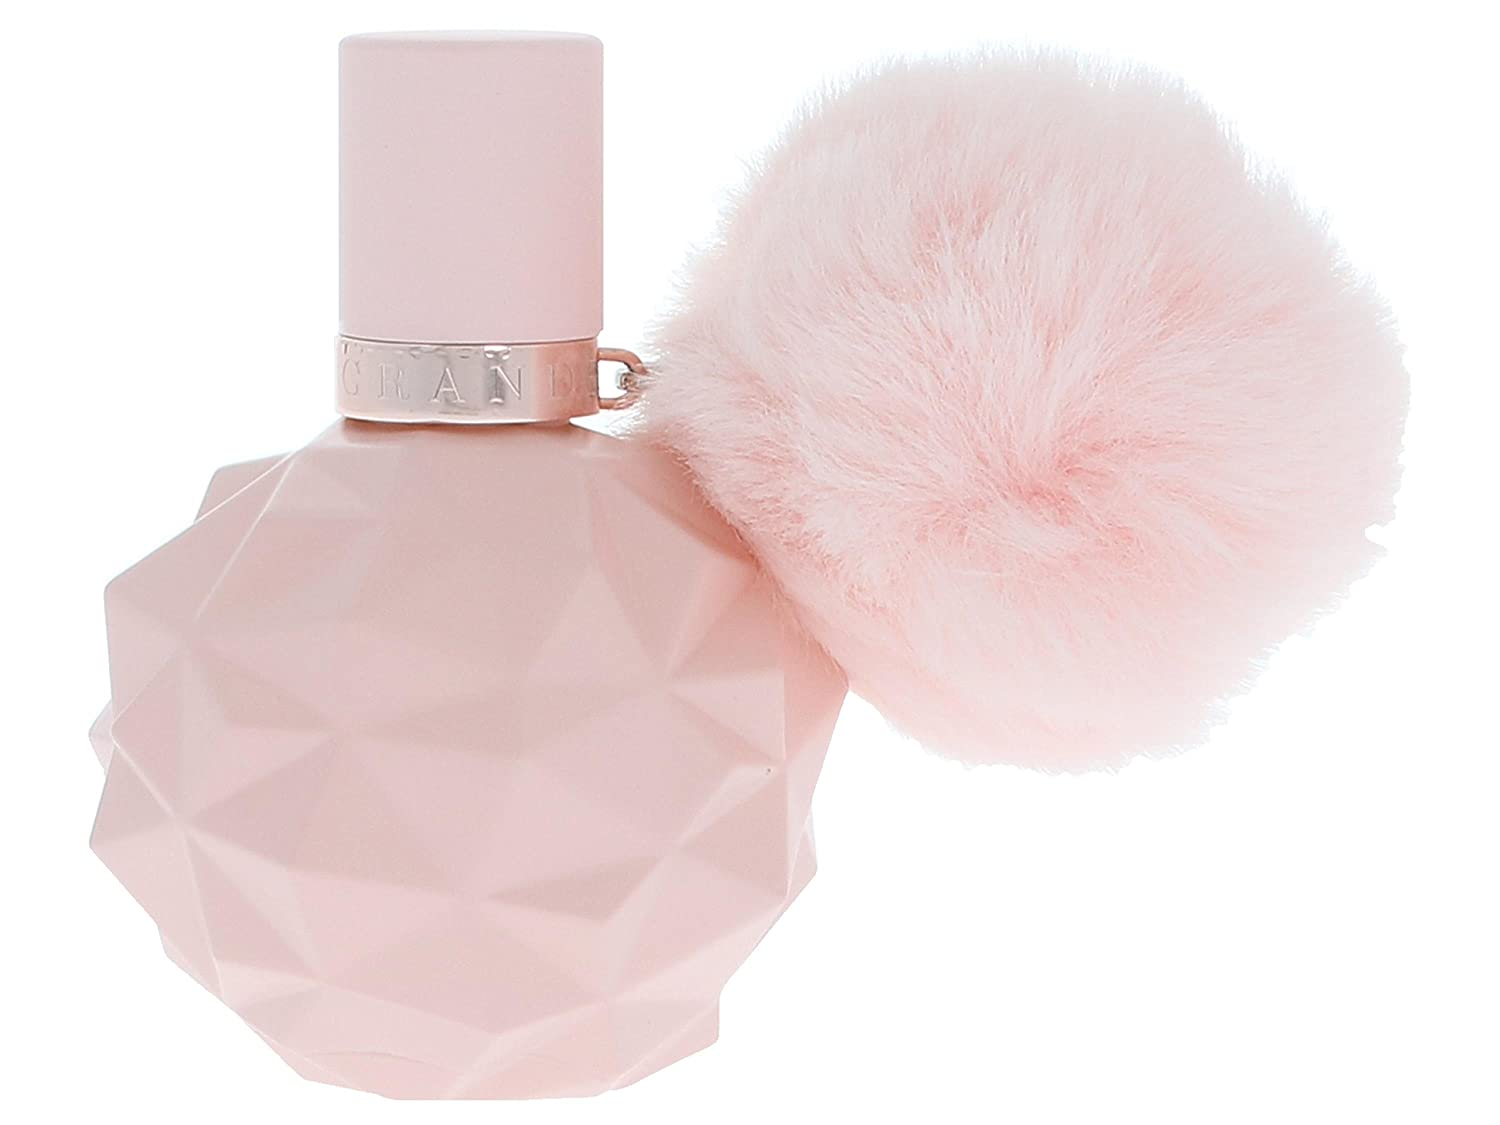 Ari by ariana grande perfume review among the stars perfume - Sweet Like Candy By Ariana Grande Eau De Parfum Spray 50ml Amazon Co Uk Beauty